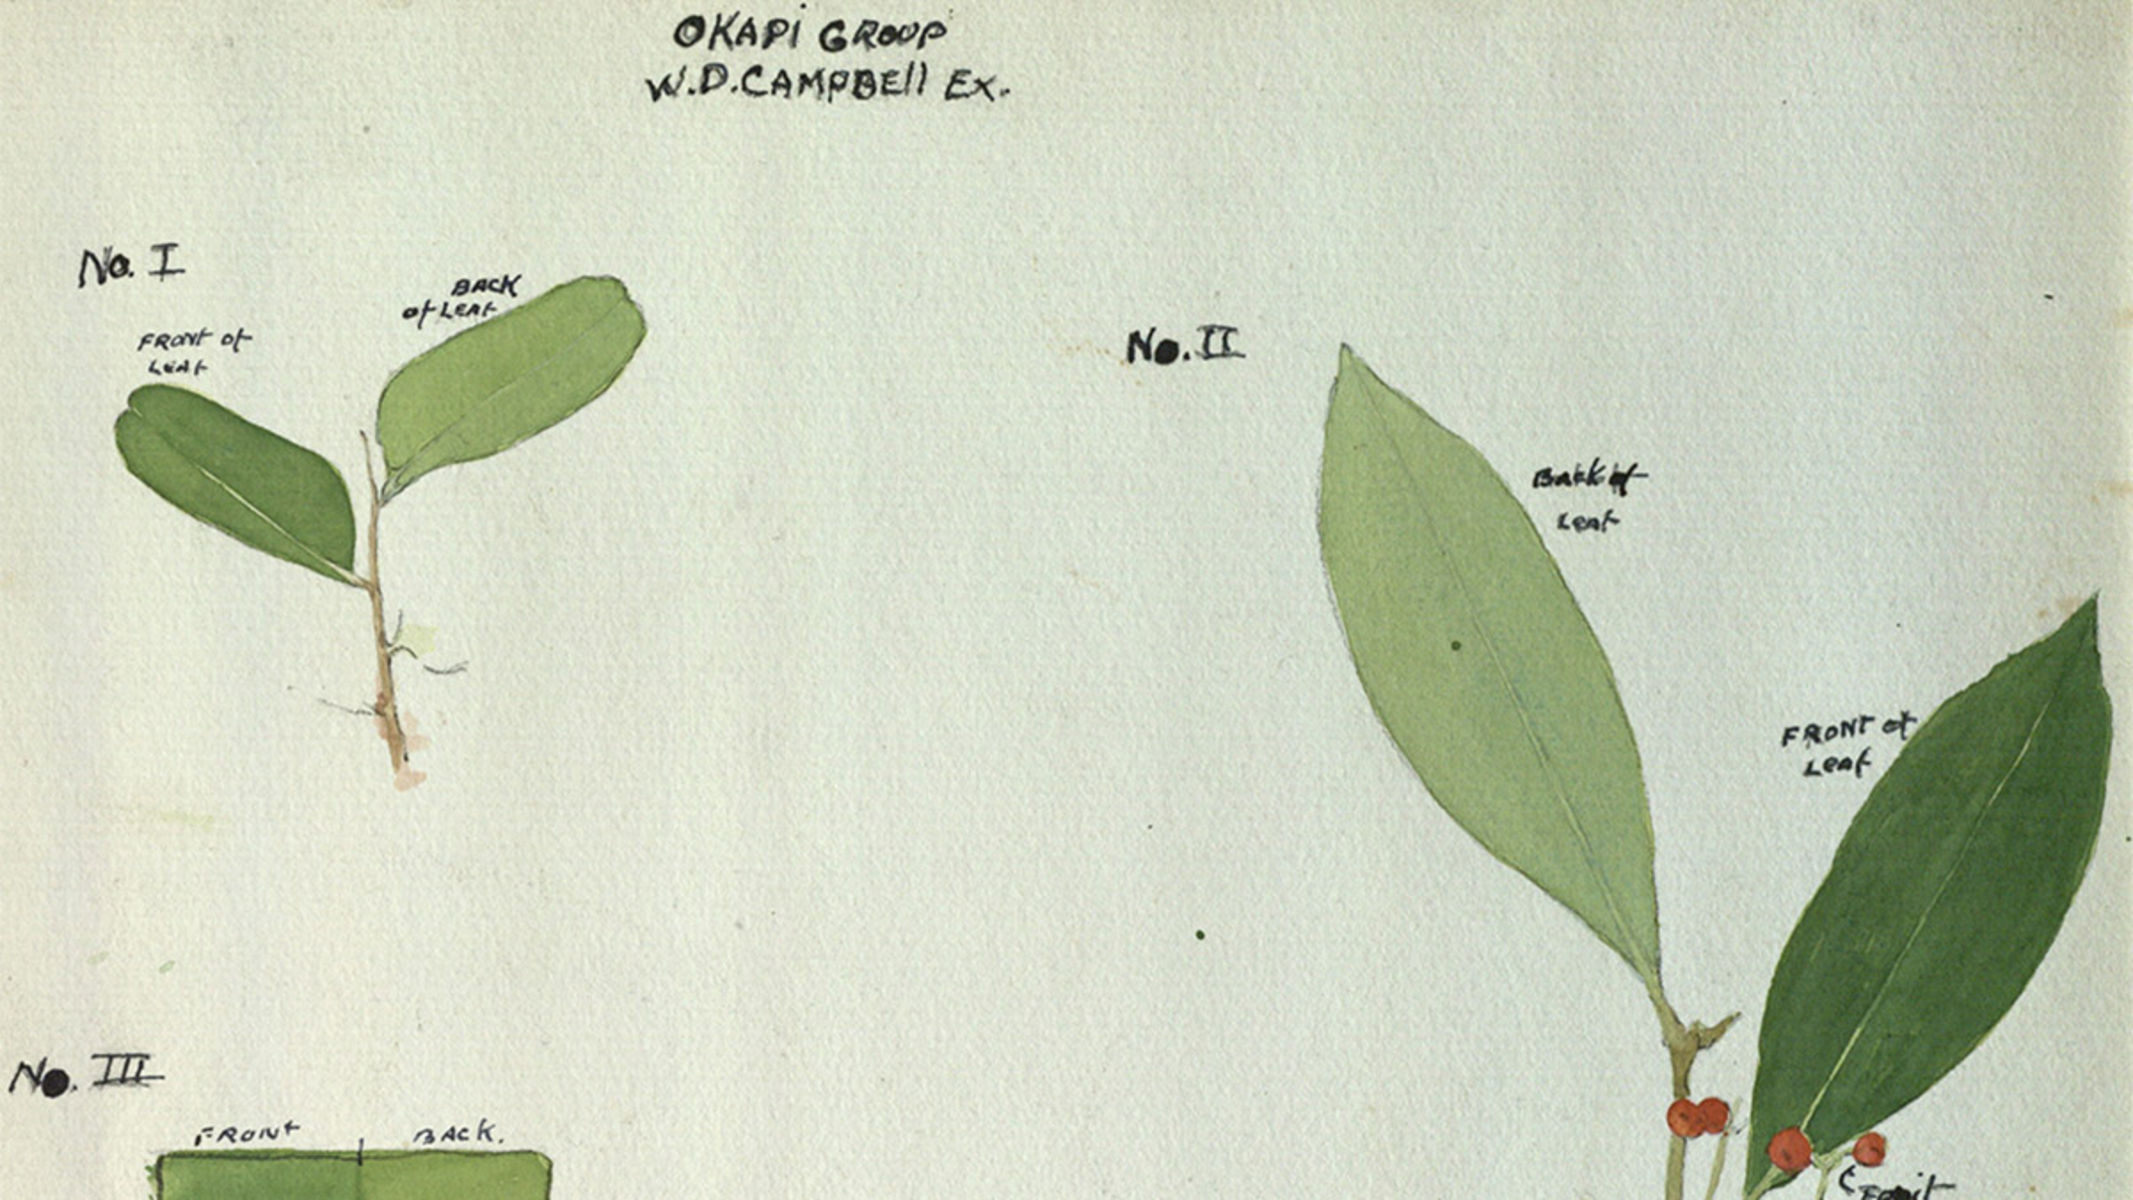 Illustrations of the fronts and backs of plant leaves with text reading Okapi Group, W.D. Campbell.